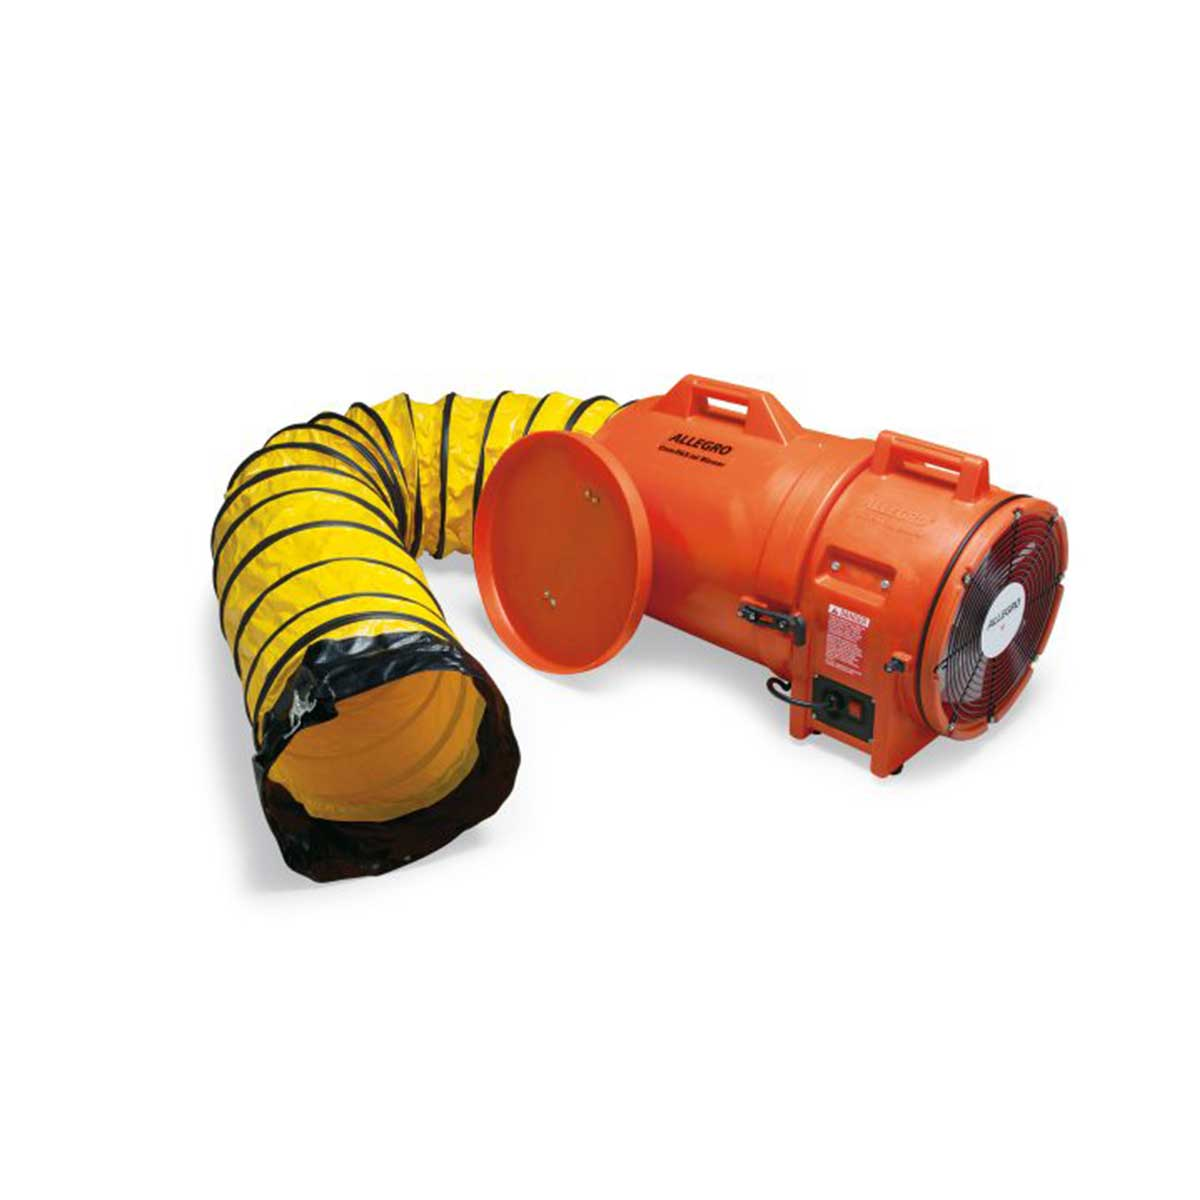 12″ Axial AC Plastic Blower w/ Canister & 15′ Ducting, 220V/50 Hz. Part: ALL-9543‐15E. Pkg: 1